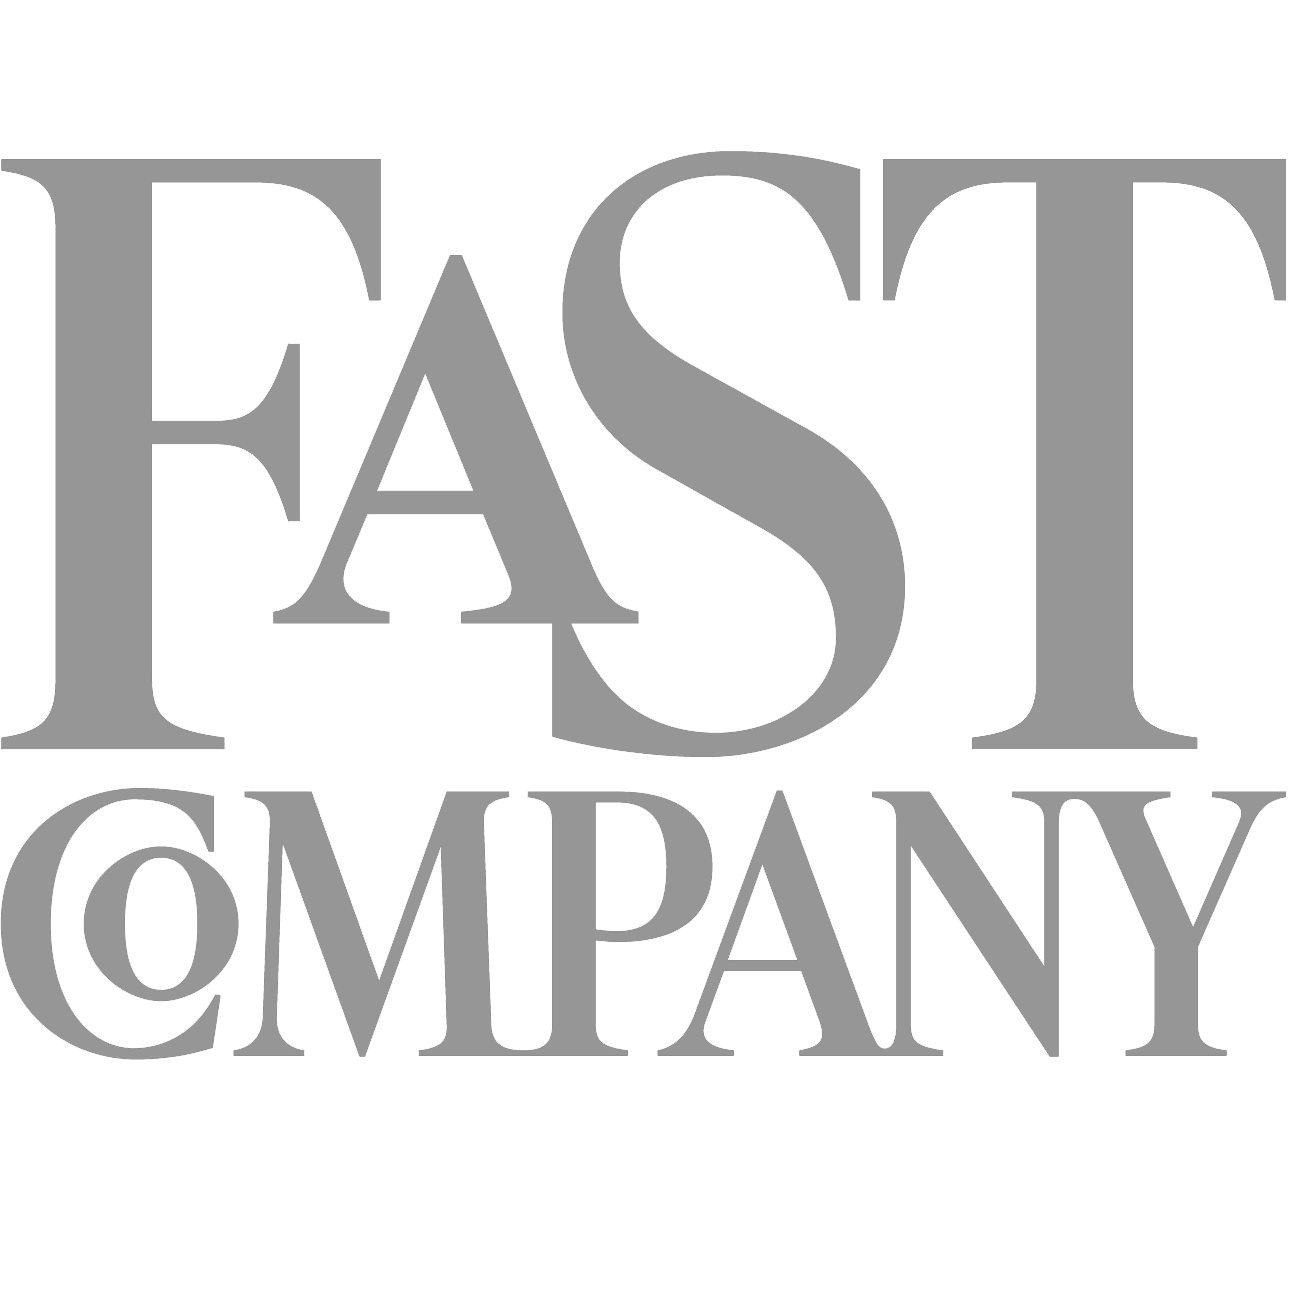 fast_company grey.png